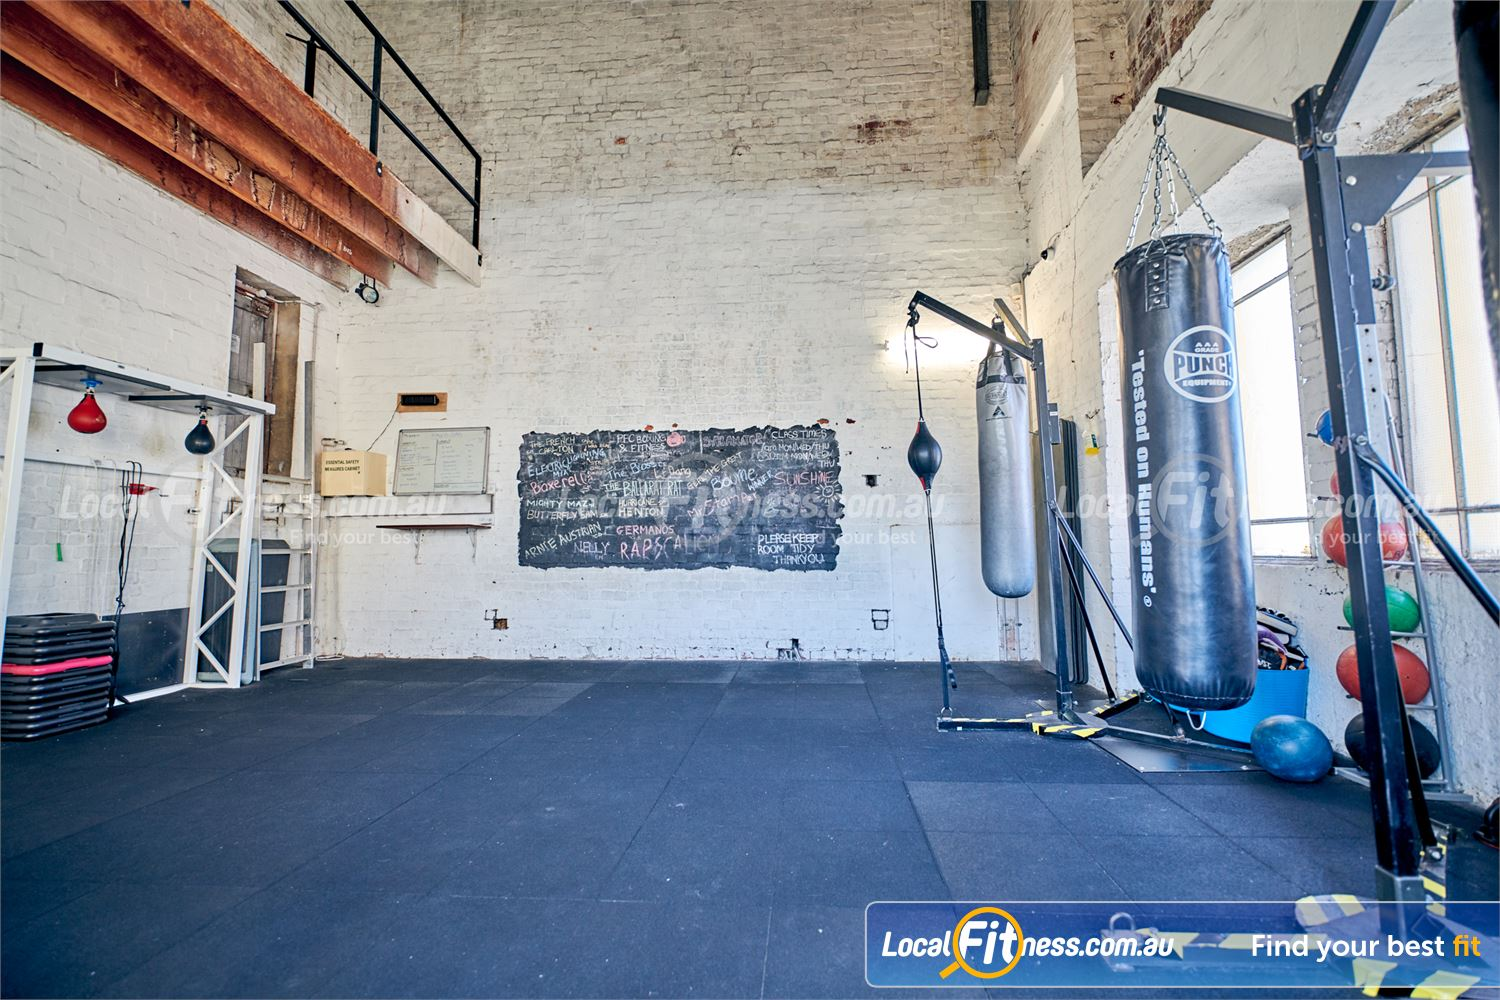 Goodlife Health Clubs Prahran Dedicated Prahran boxing area with speedballs, floor to ceiling balls and heavy bags.